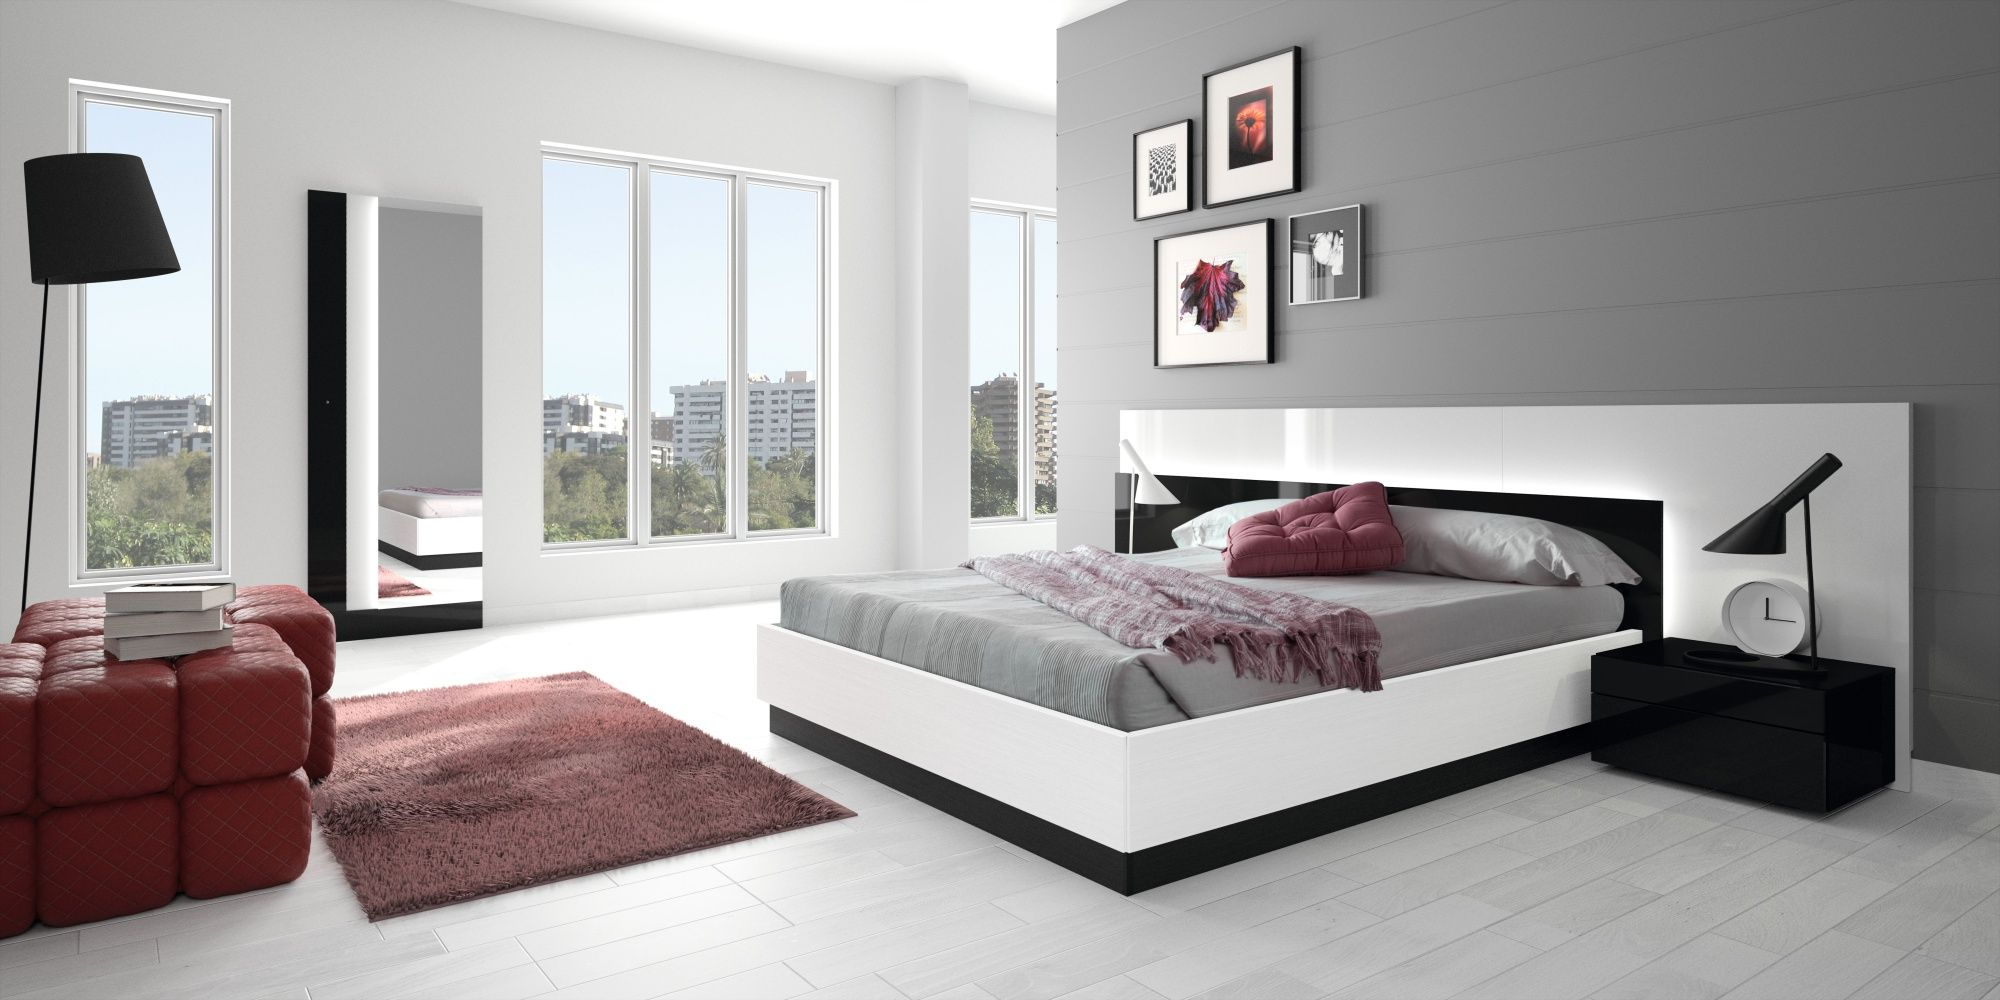 30 Awesome Bedroom Furniture Design IdeasModern bedroom